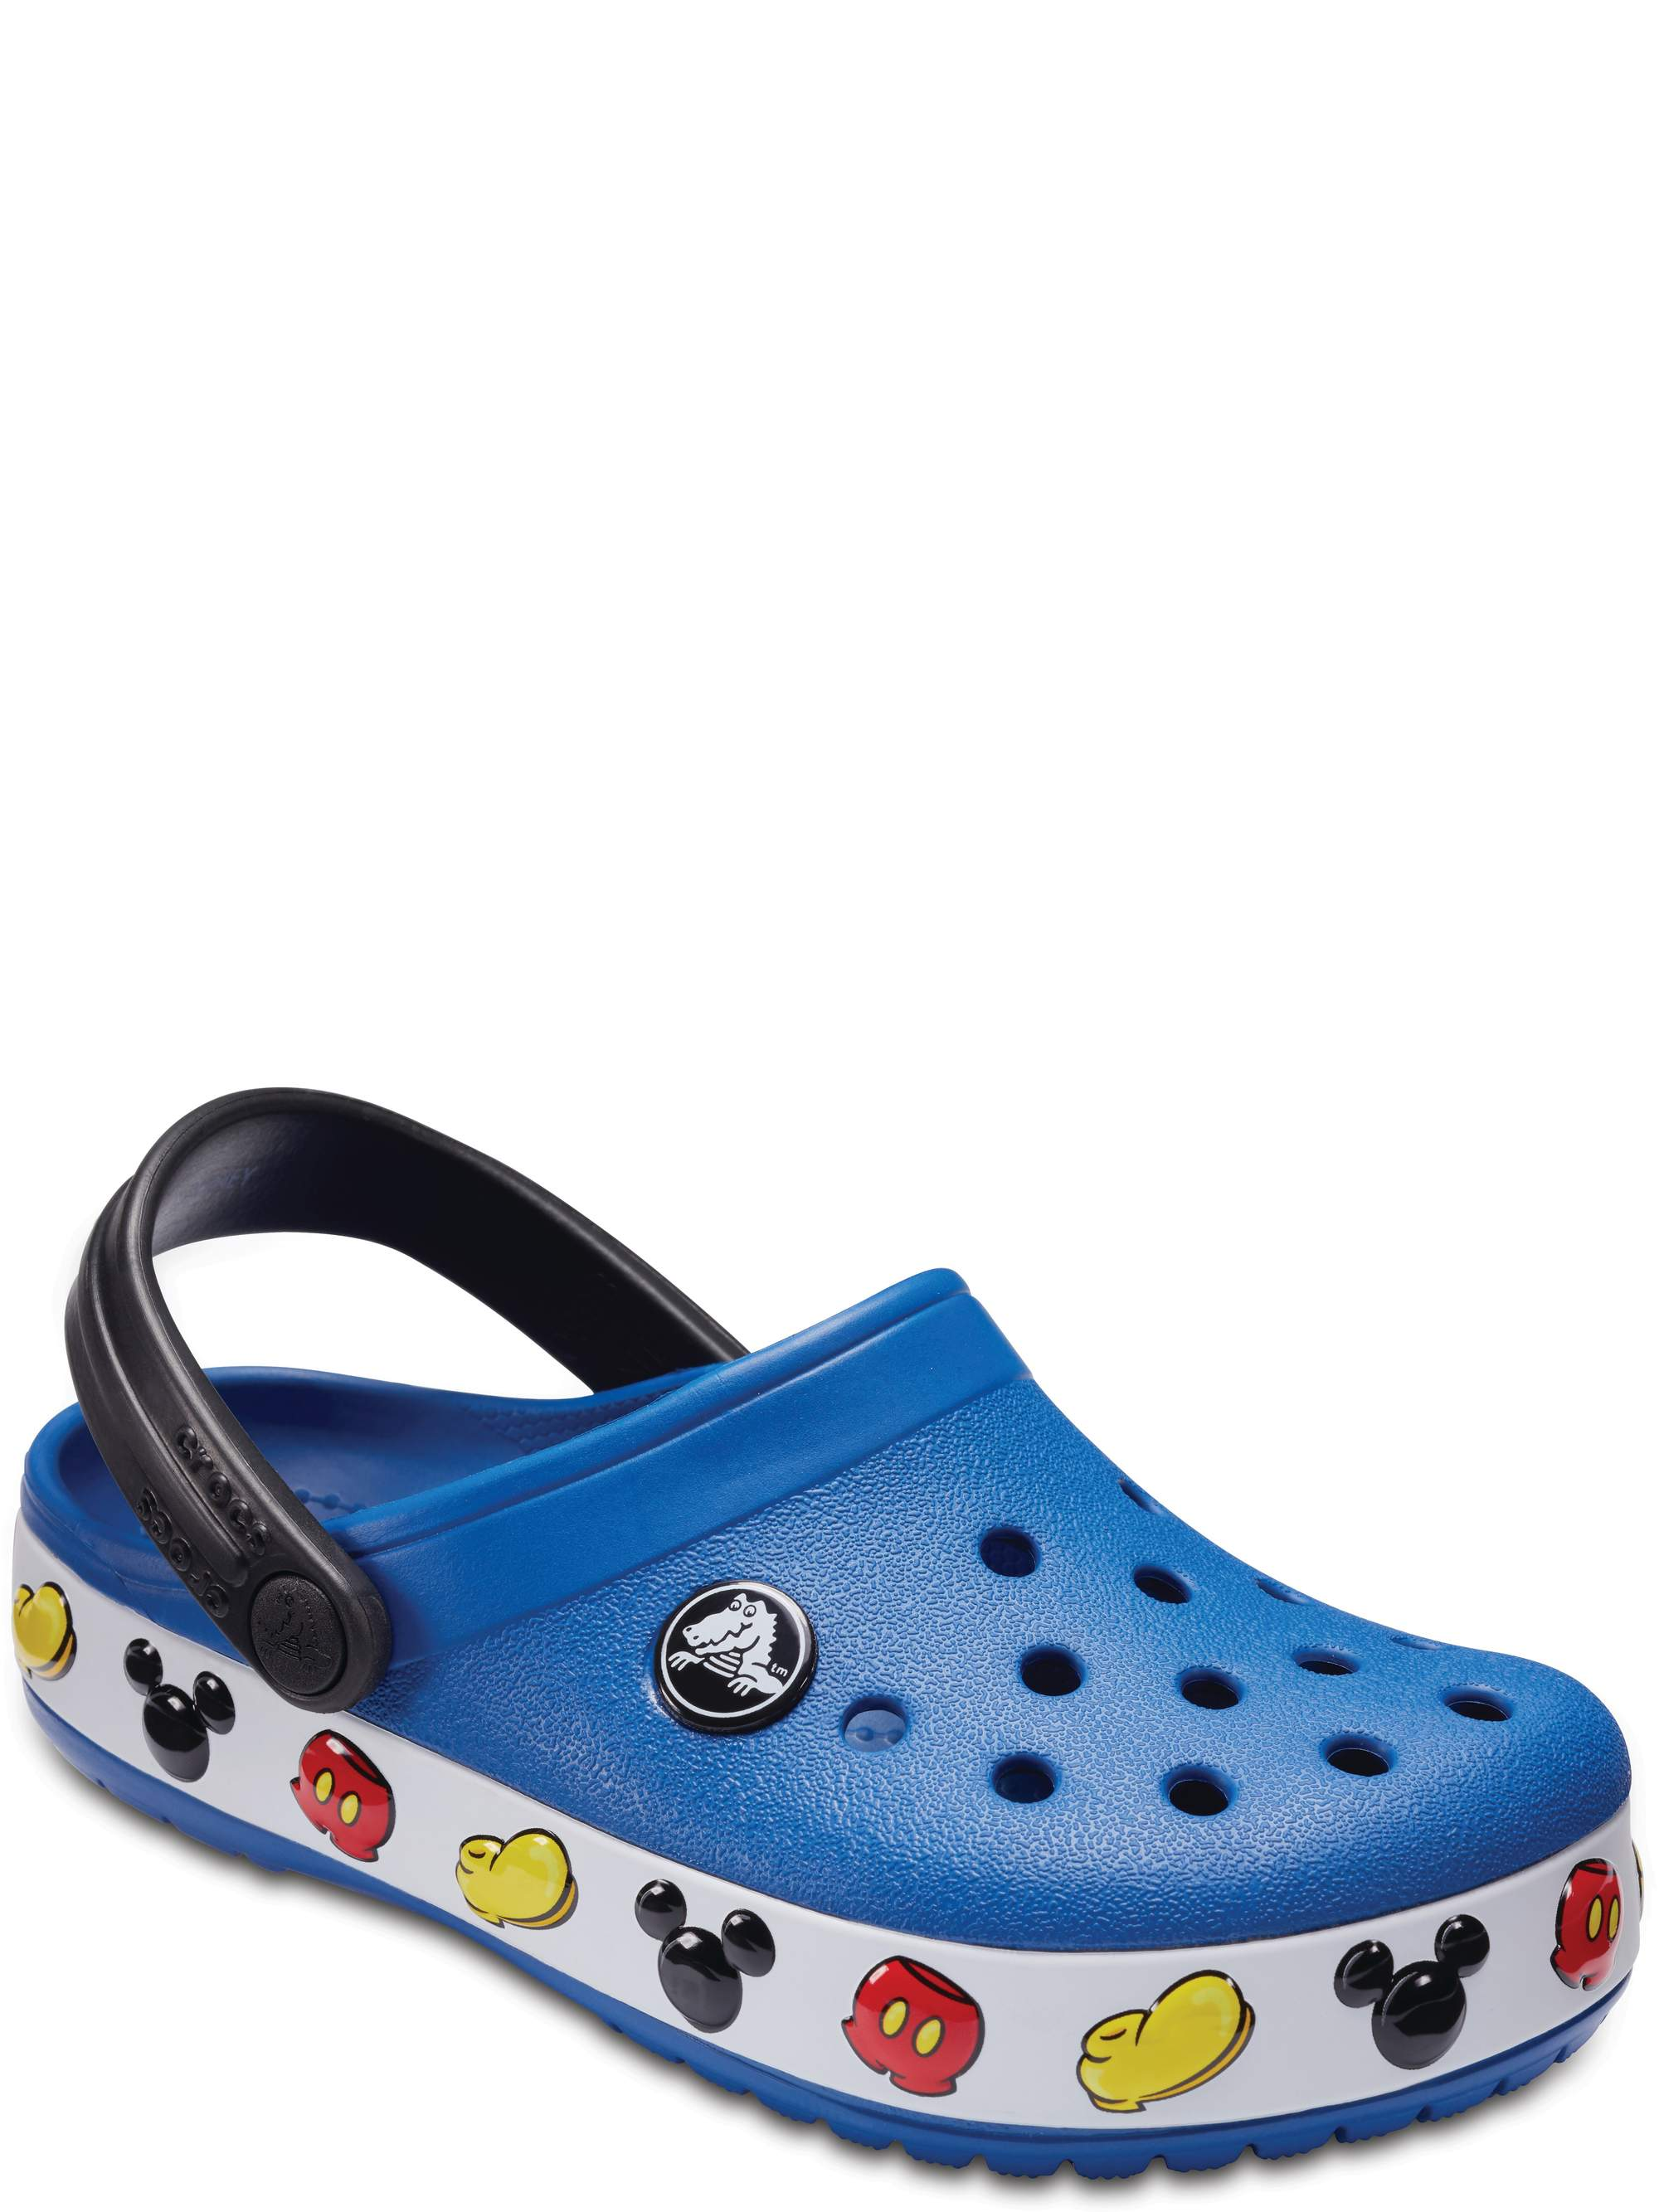 The Cute Lil Caterpillar Clog in Blue from Chunks of Charm